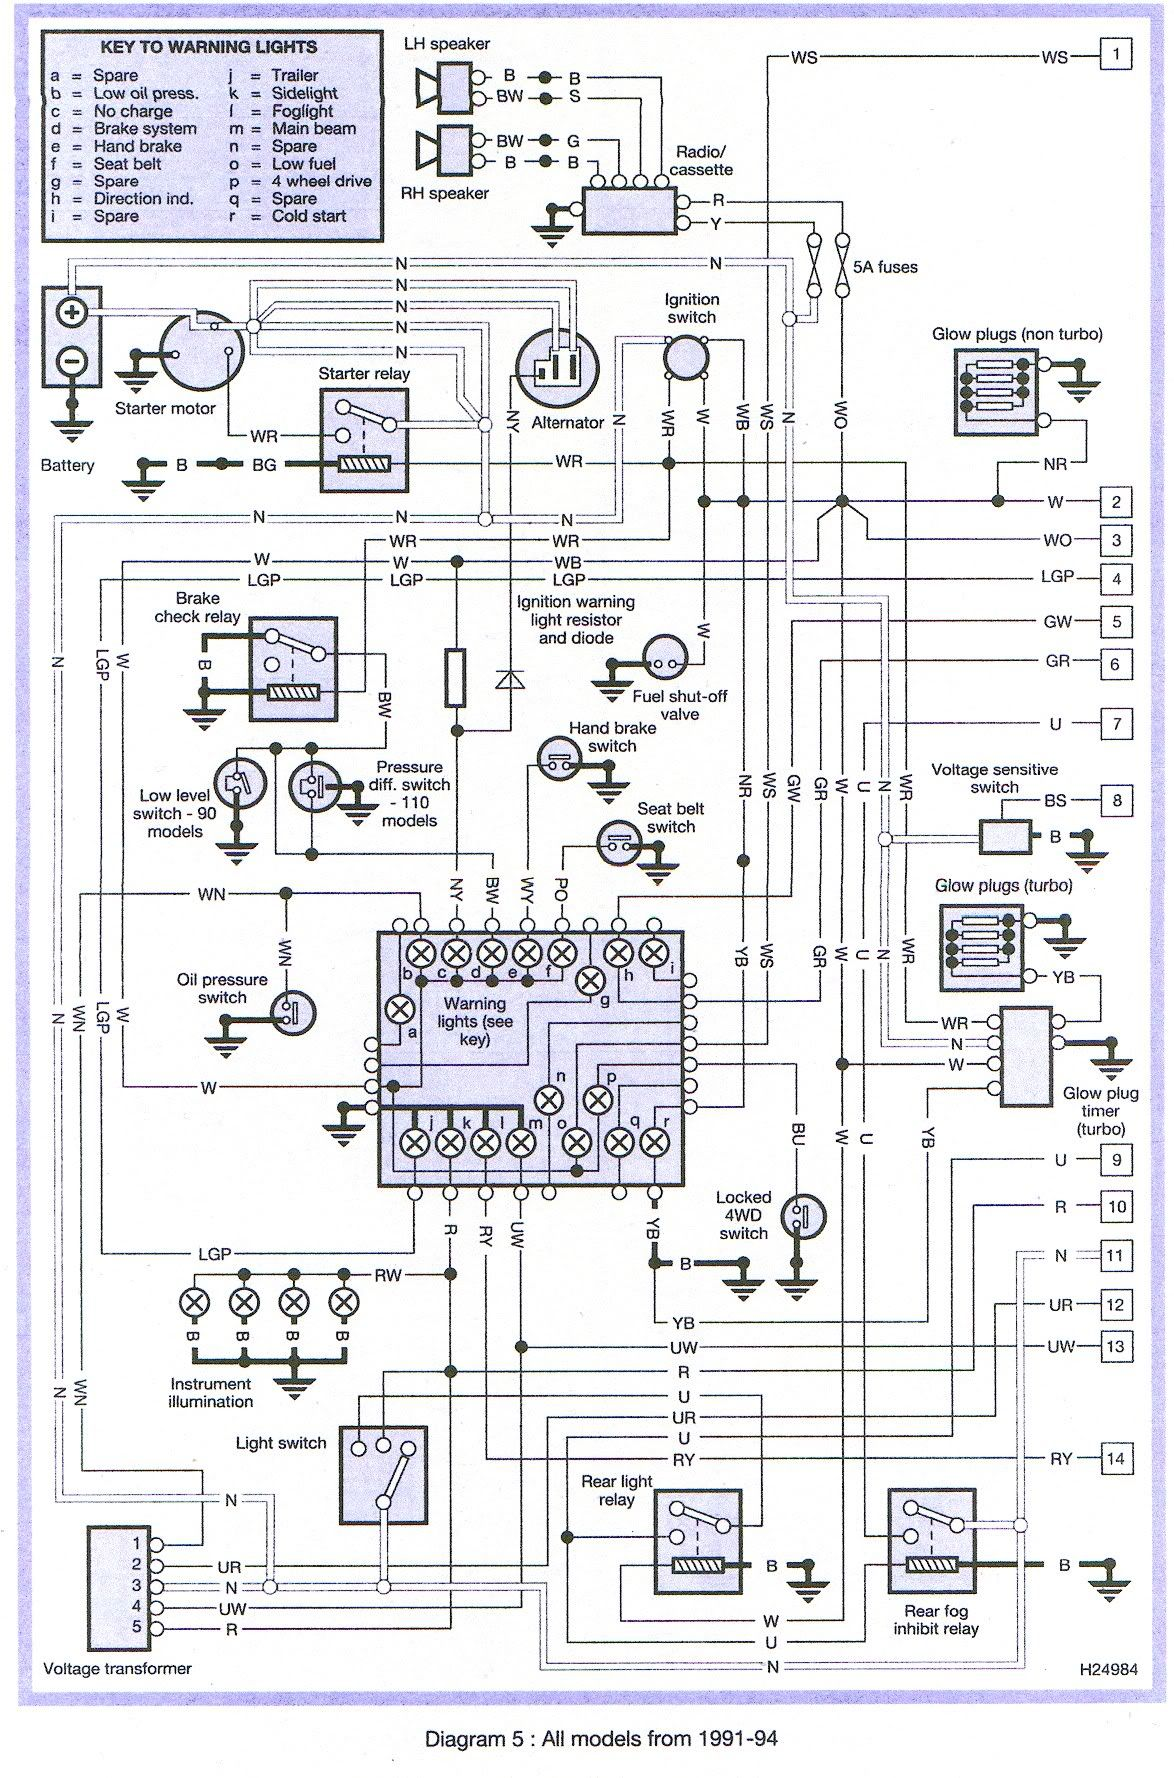 small resolution of 2004 land rover engine diagram wiring diagram img wiring diagram 2004 land rover hse